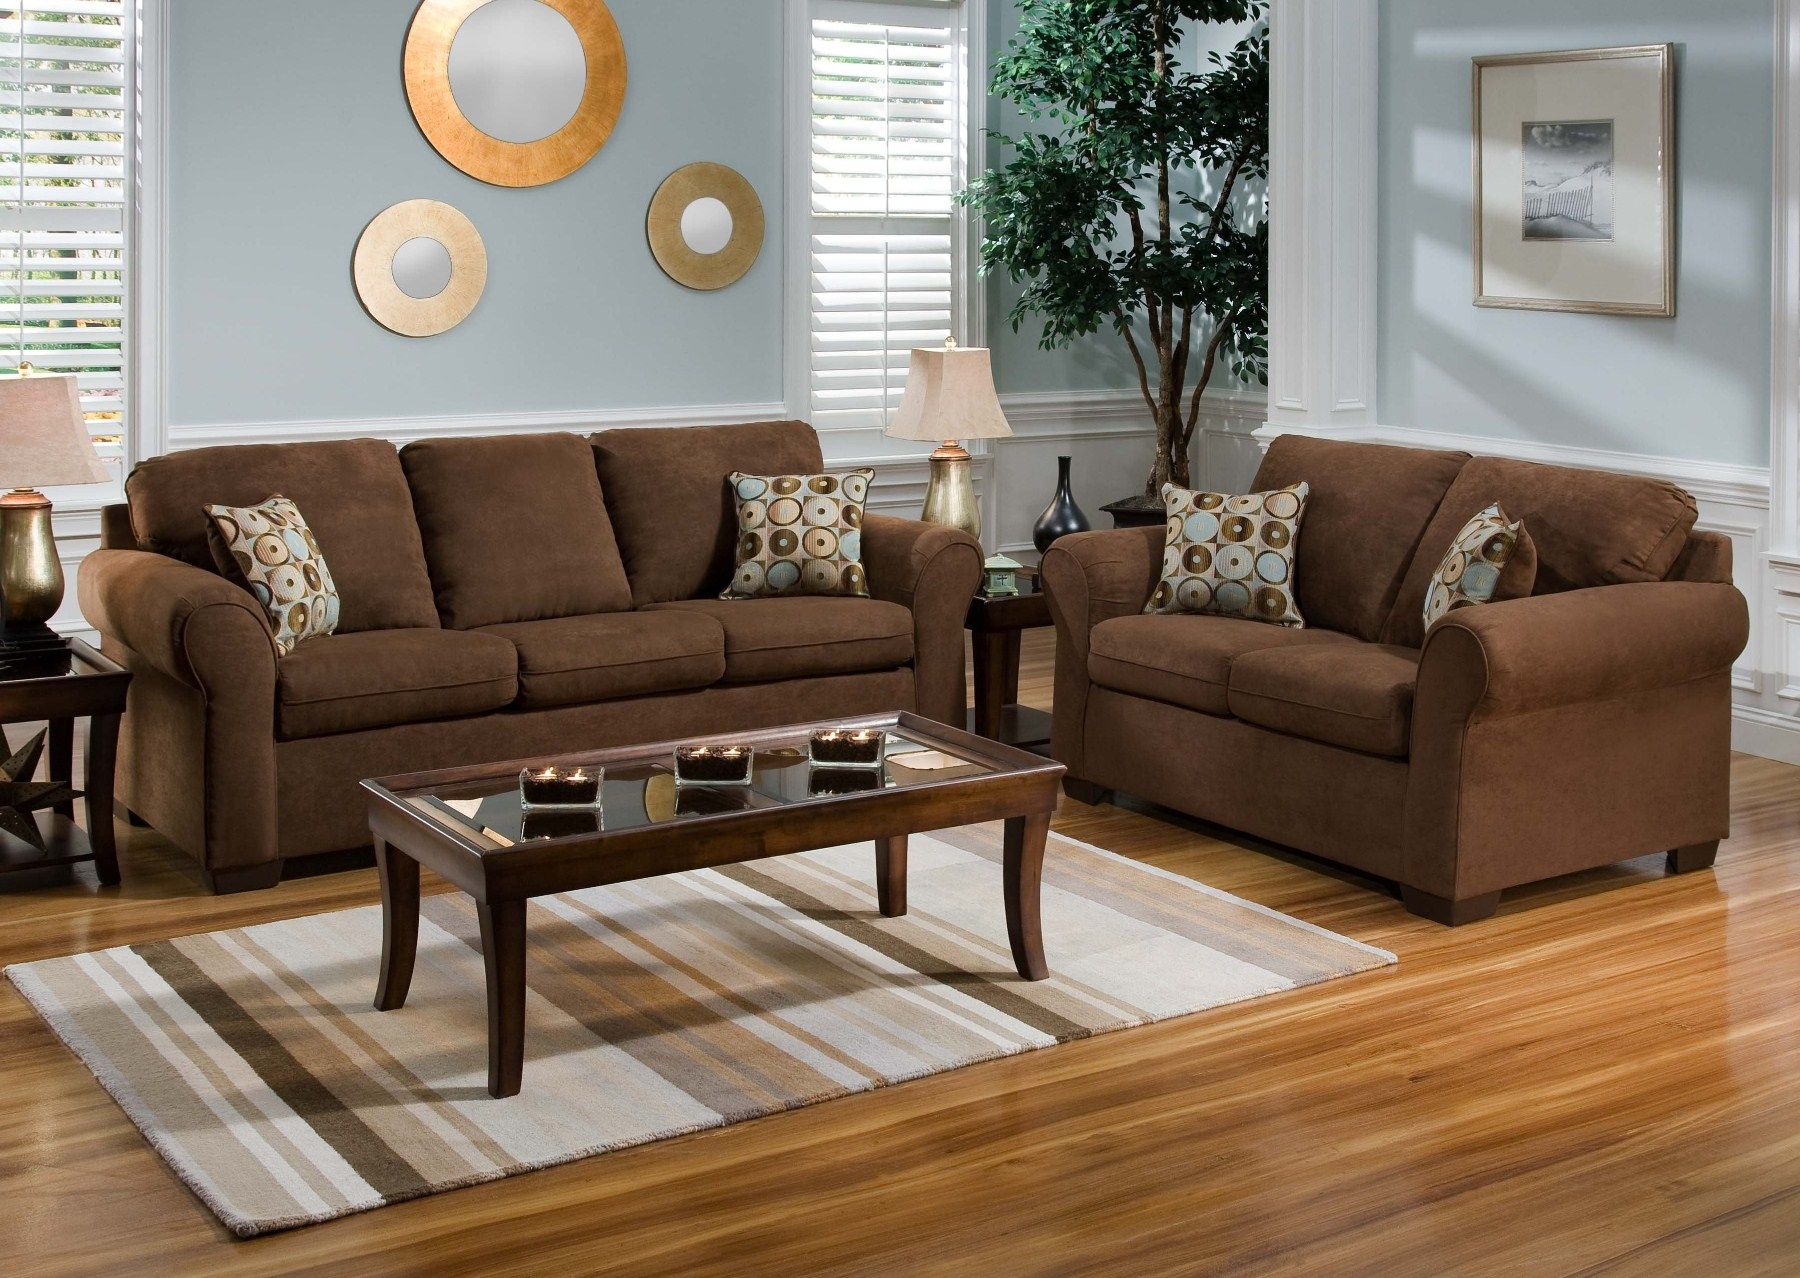 17 best images about living room with brown coach on